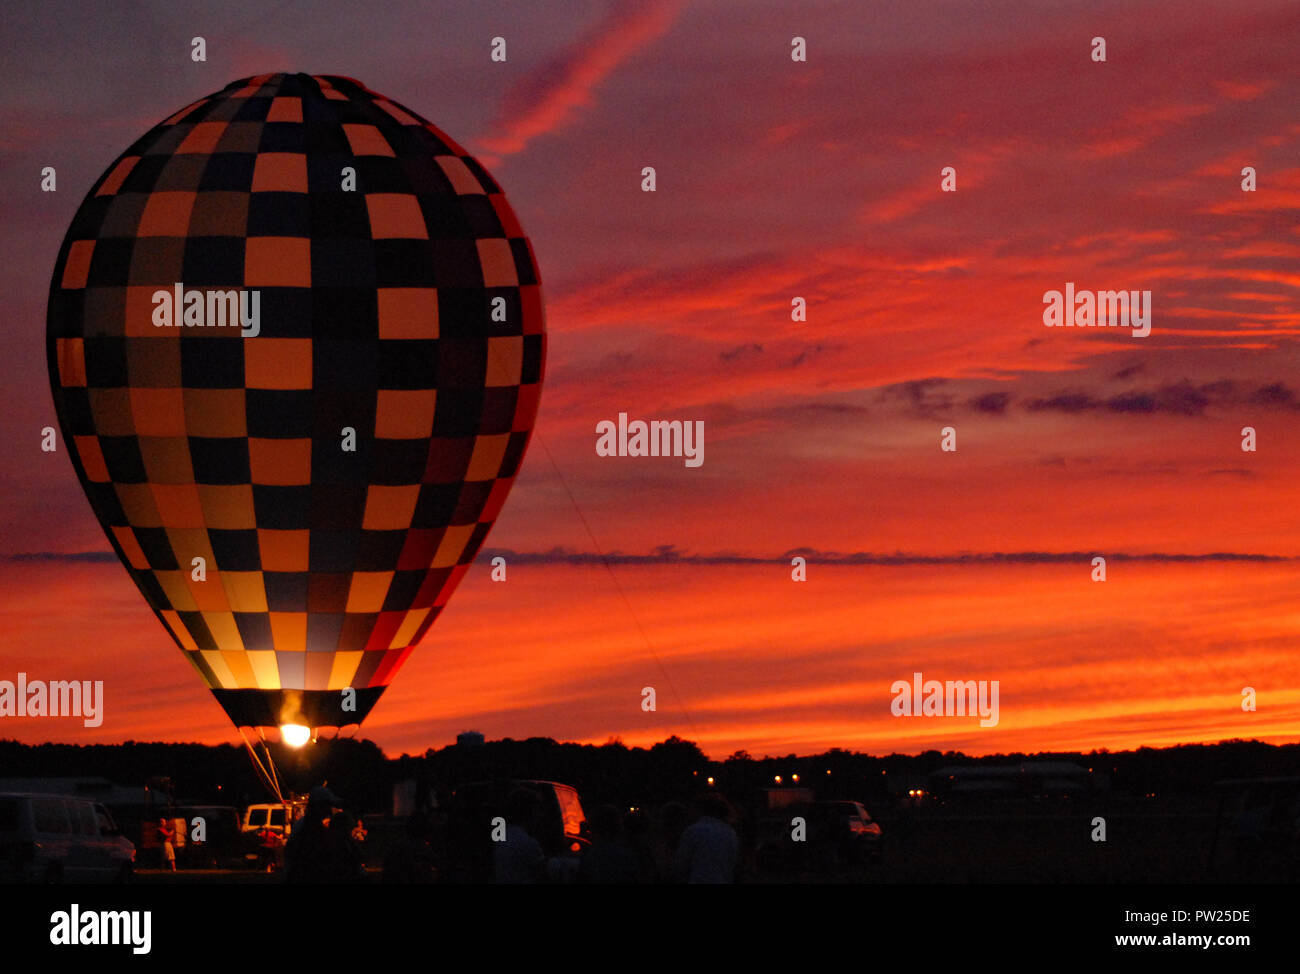 Pre-launch inflated hot air balloon on ground at sunset - Stock Image